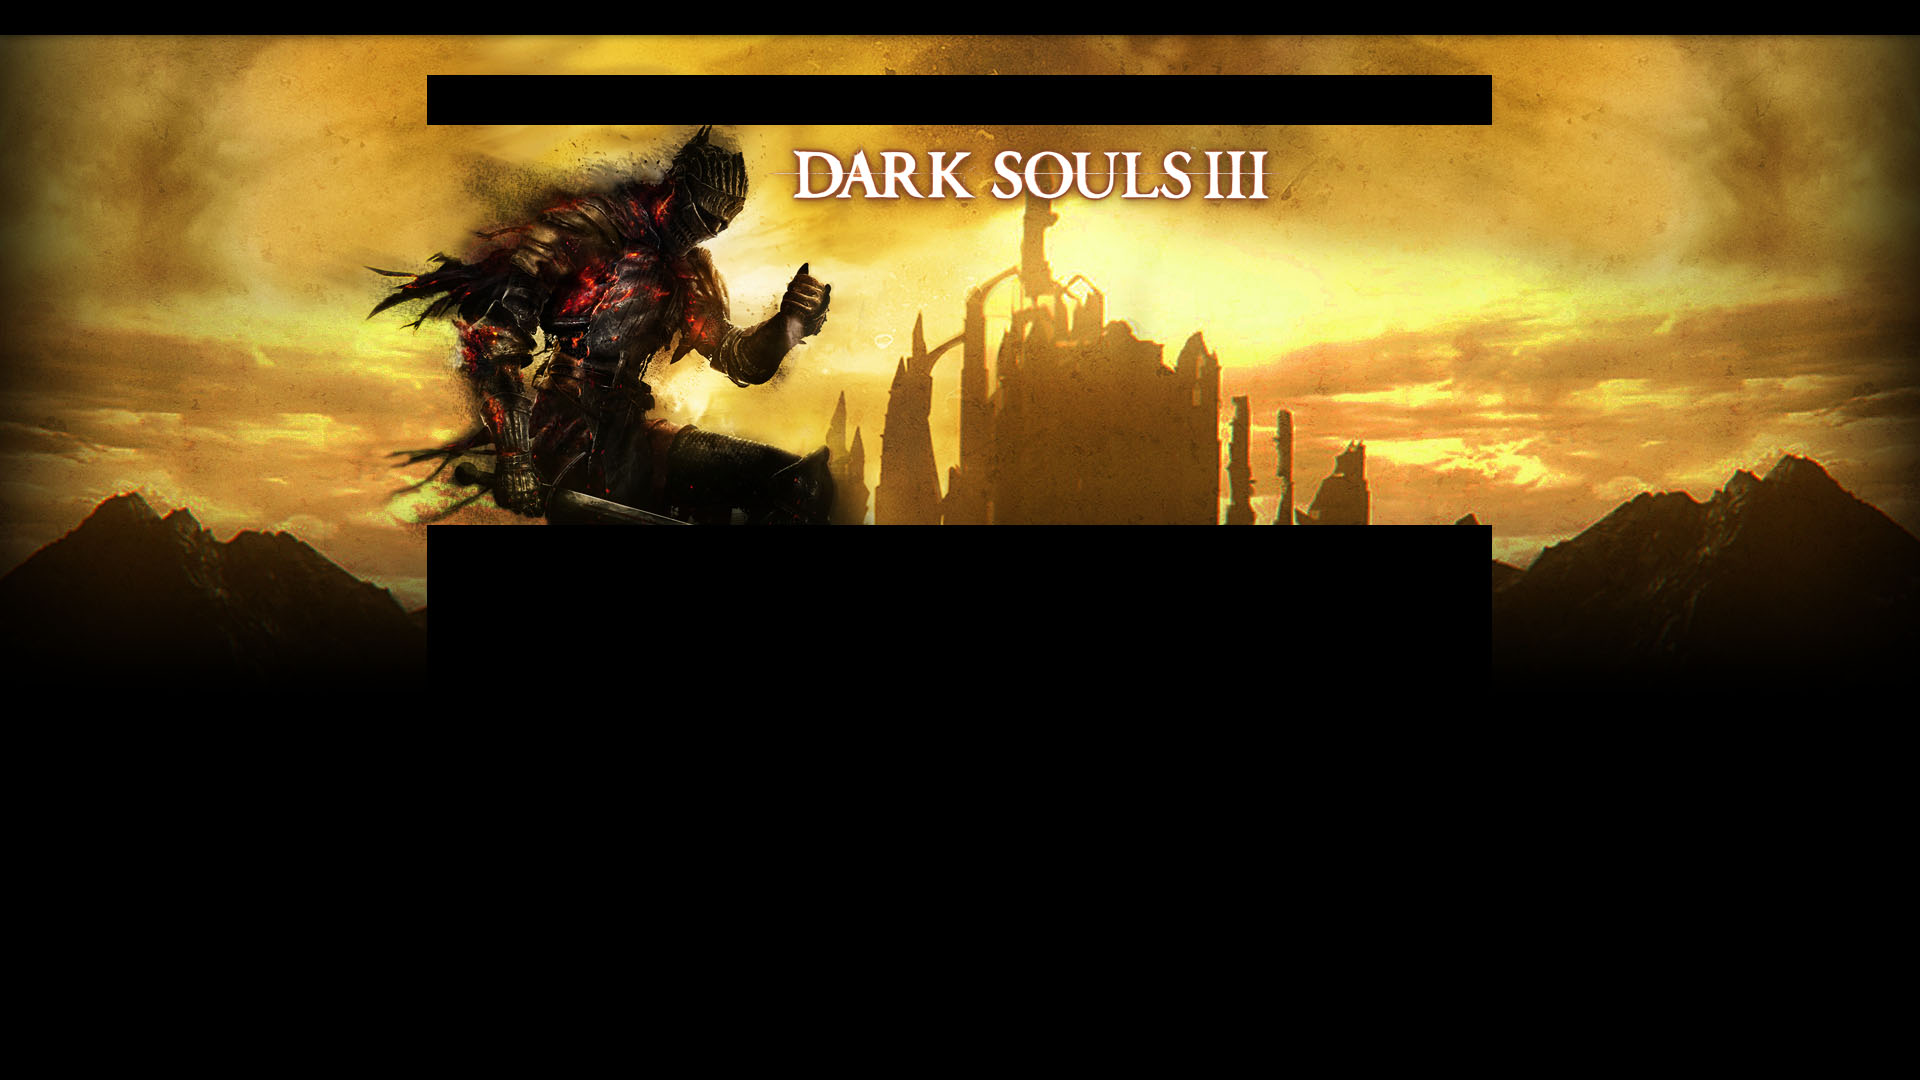 DARK SOULS III video game